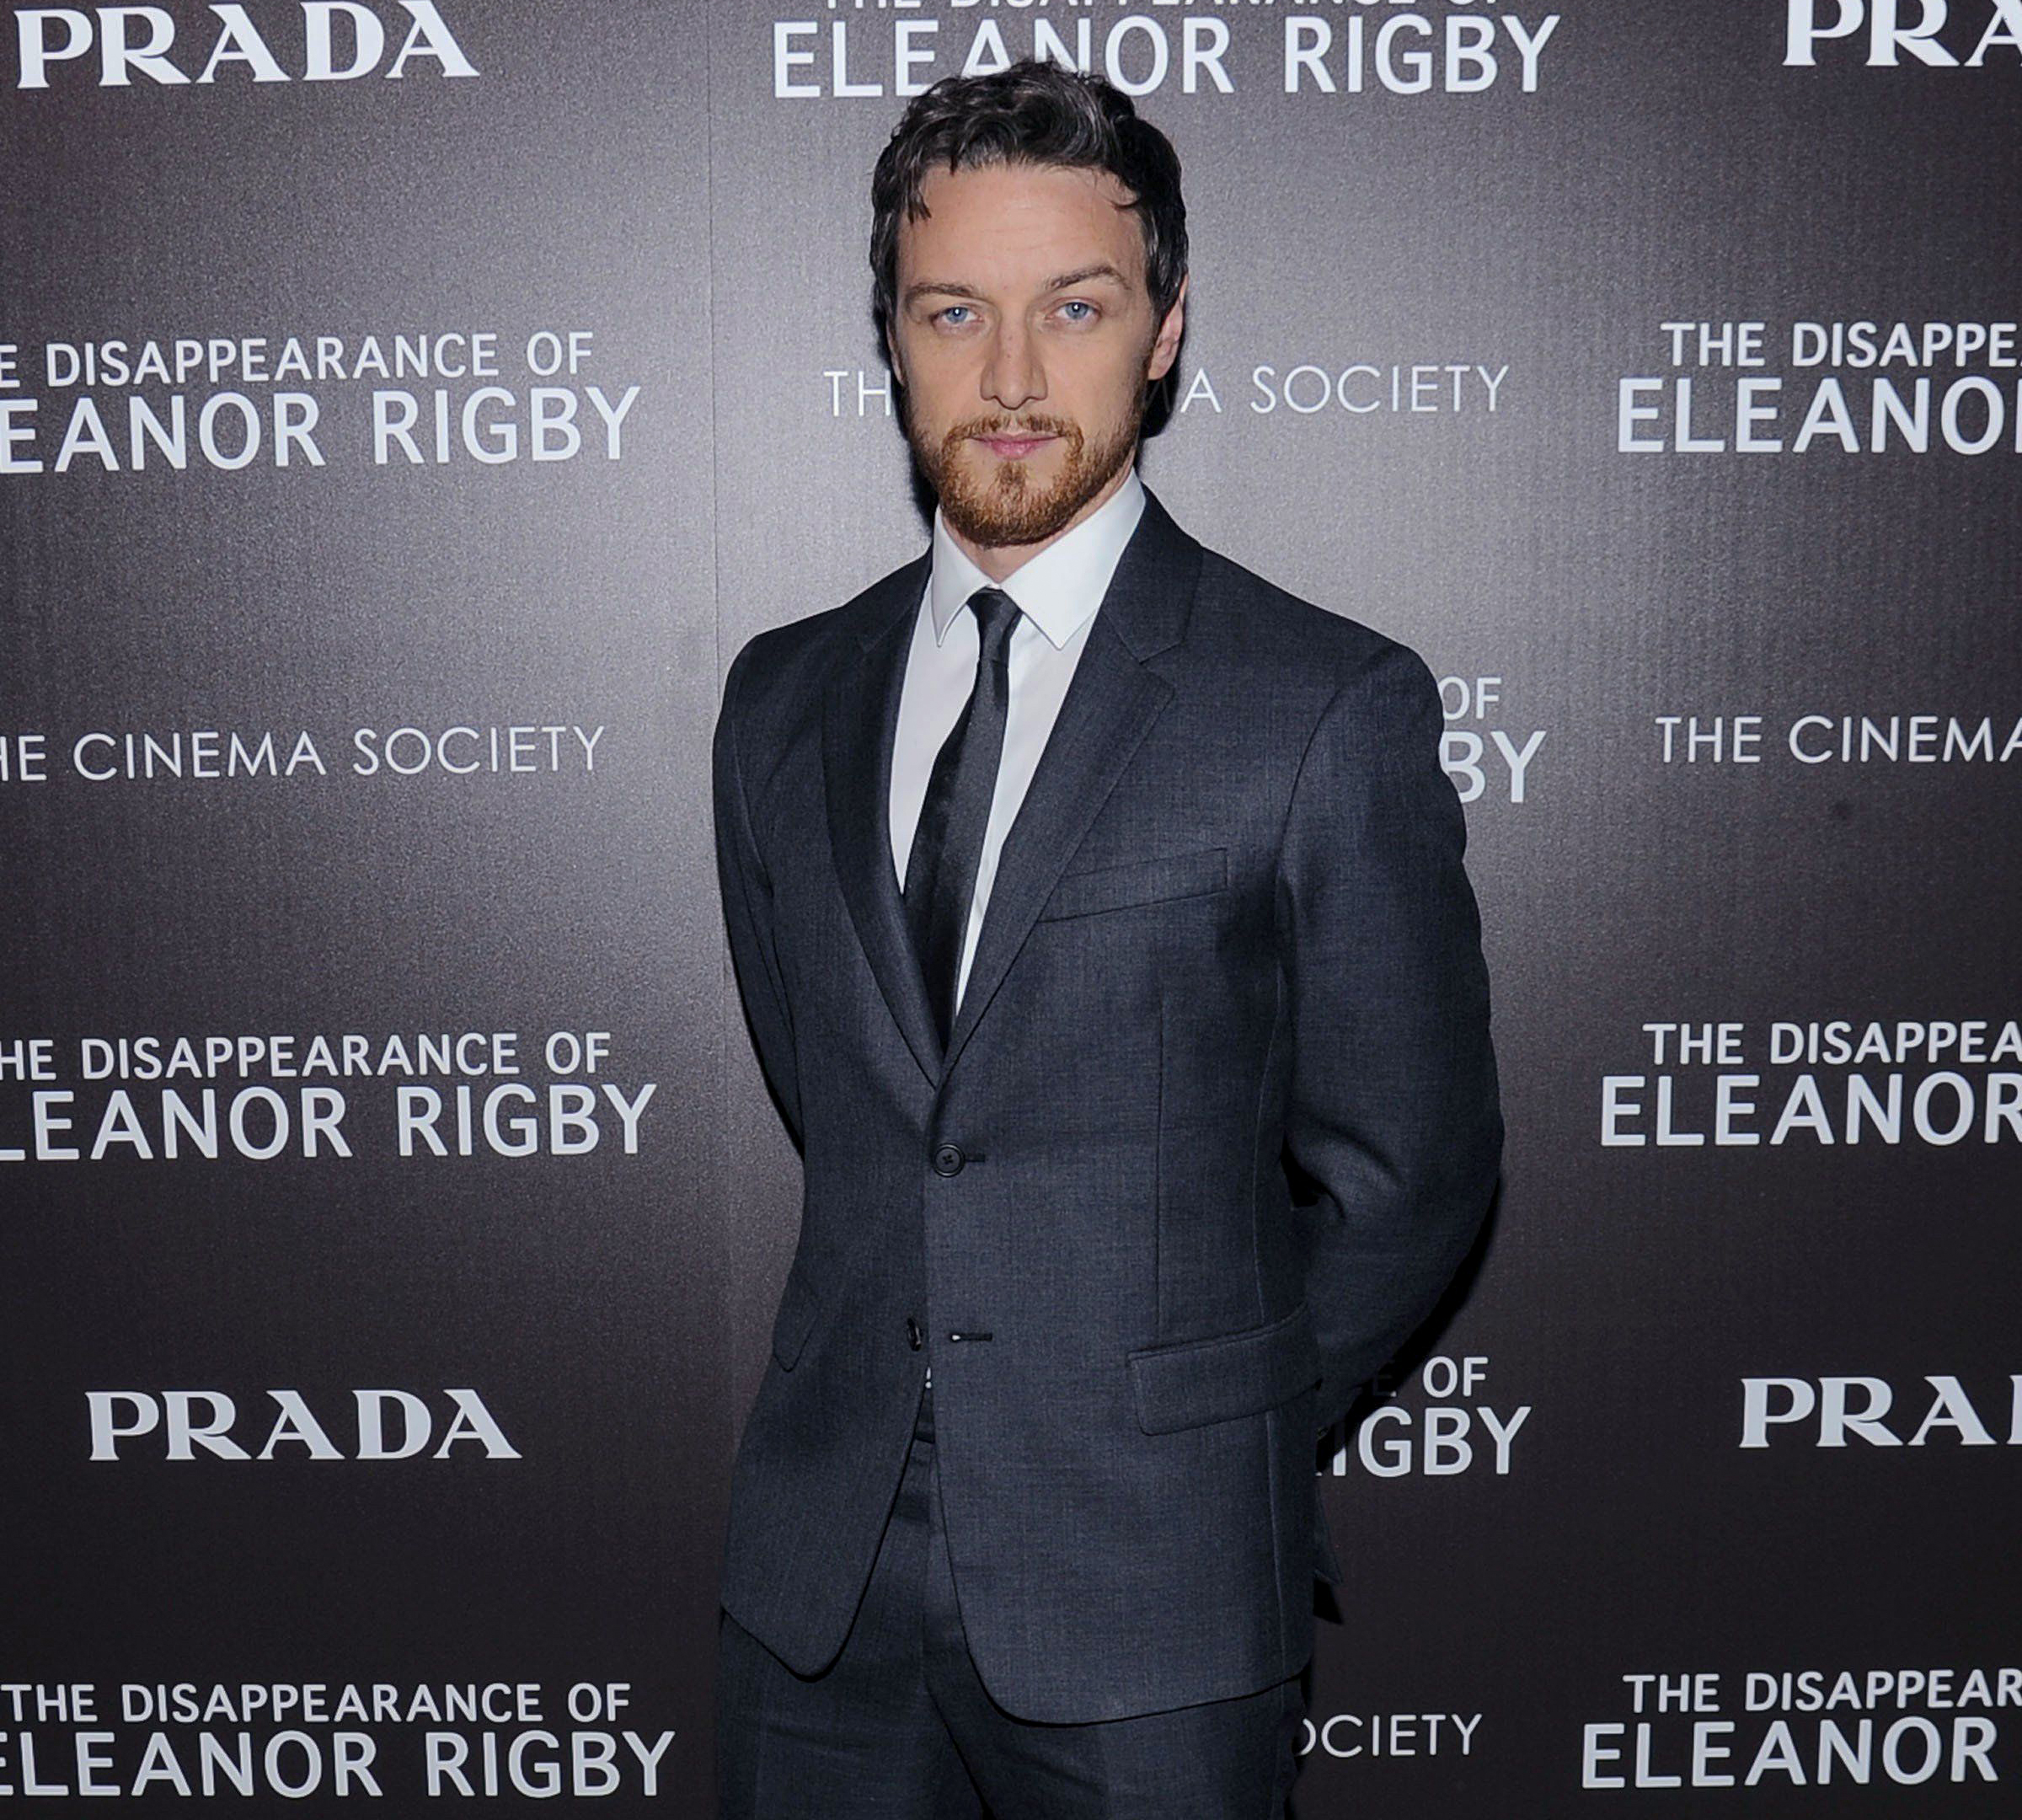 James McAvoy wears a Prada suit